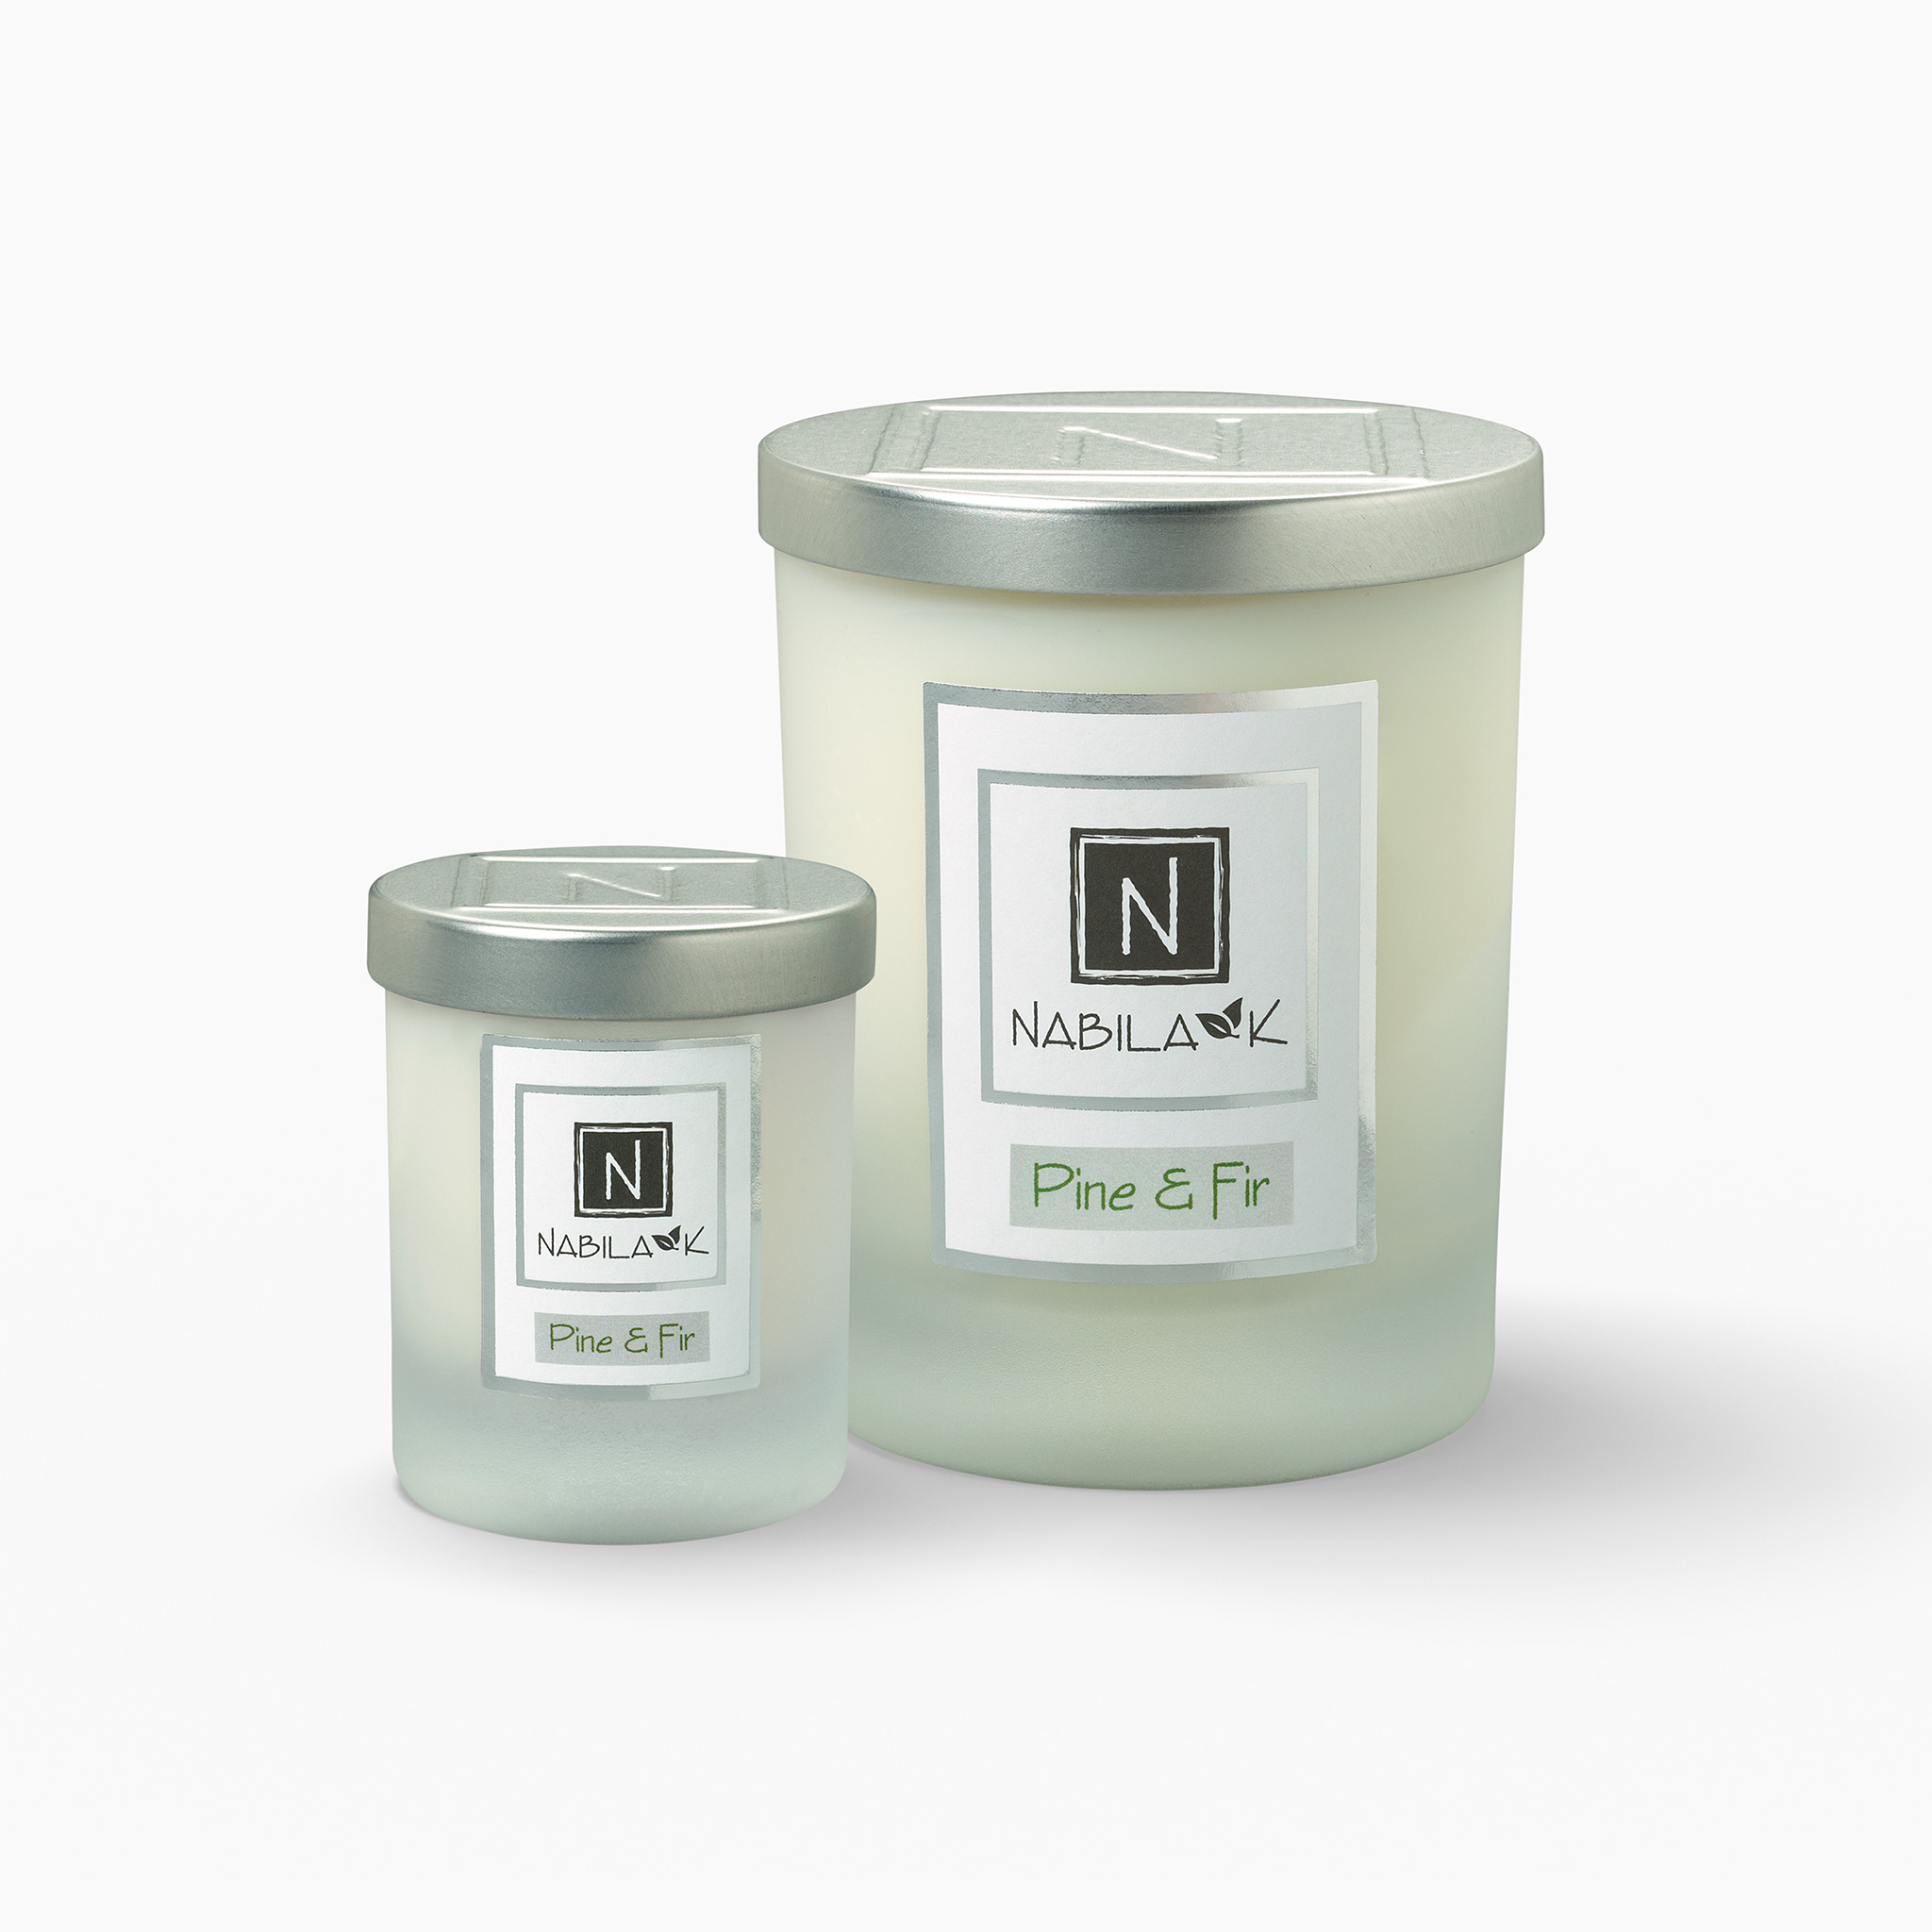 1 Large and 1 Small Version of Nabila K's Pine and Fir Candle